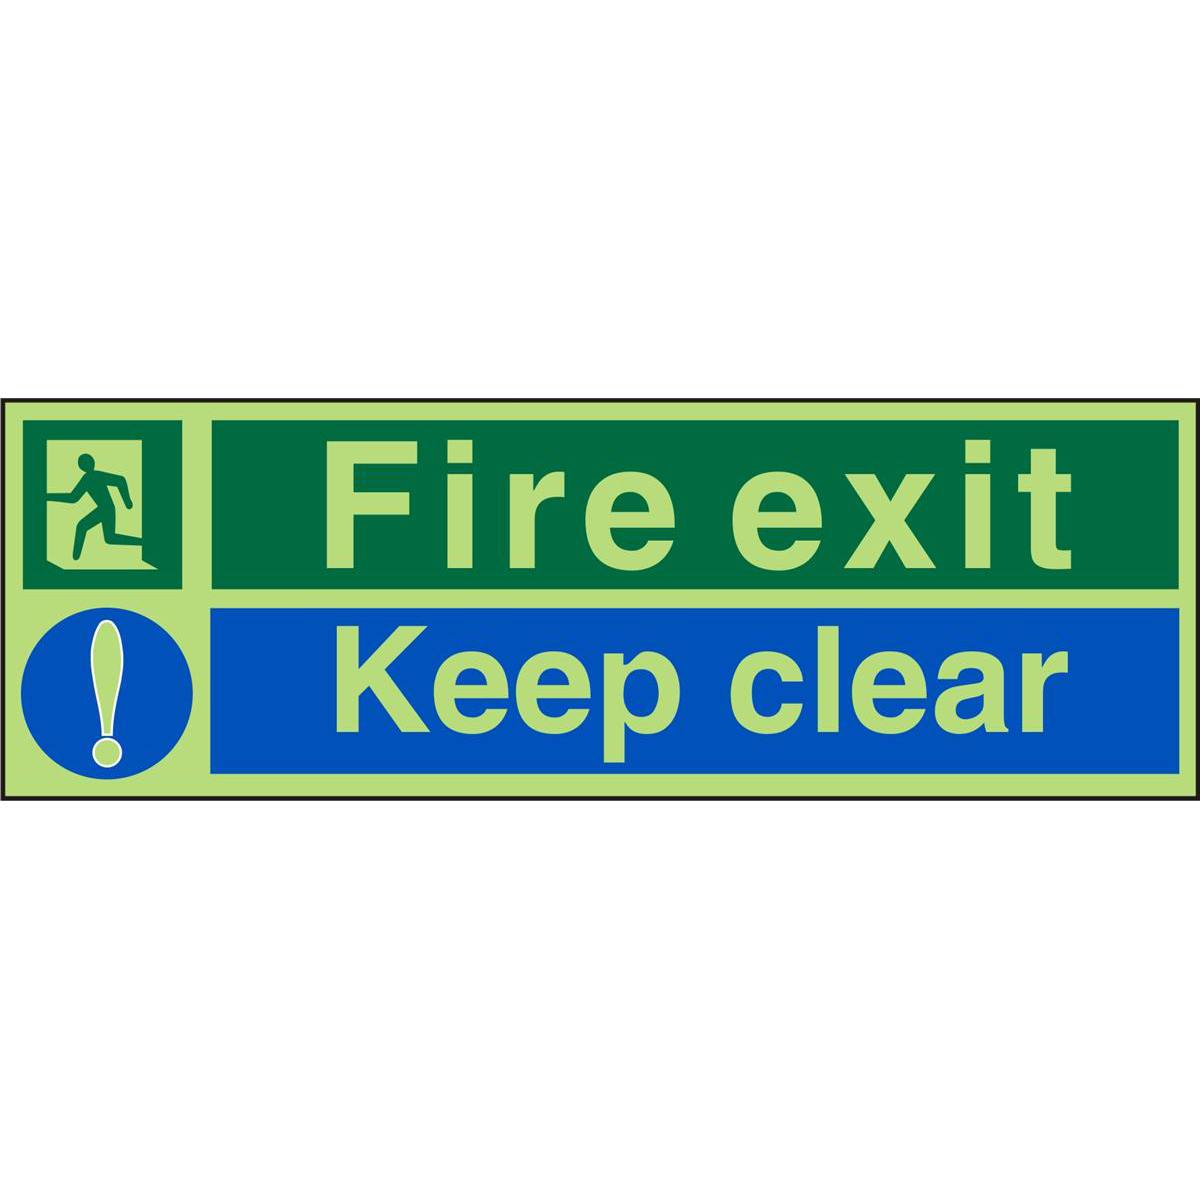 Photolum Sign 450x150 S/A Vinyl Fire Exit Keep Clear Ref PSP126SAV450x150 *Up to 10 Day Leadtime*